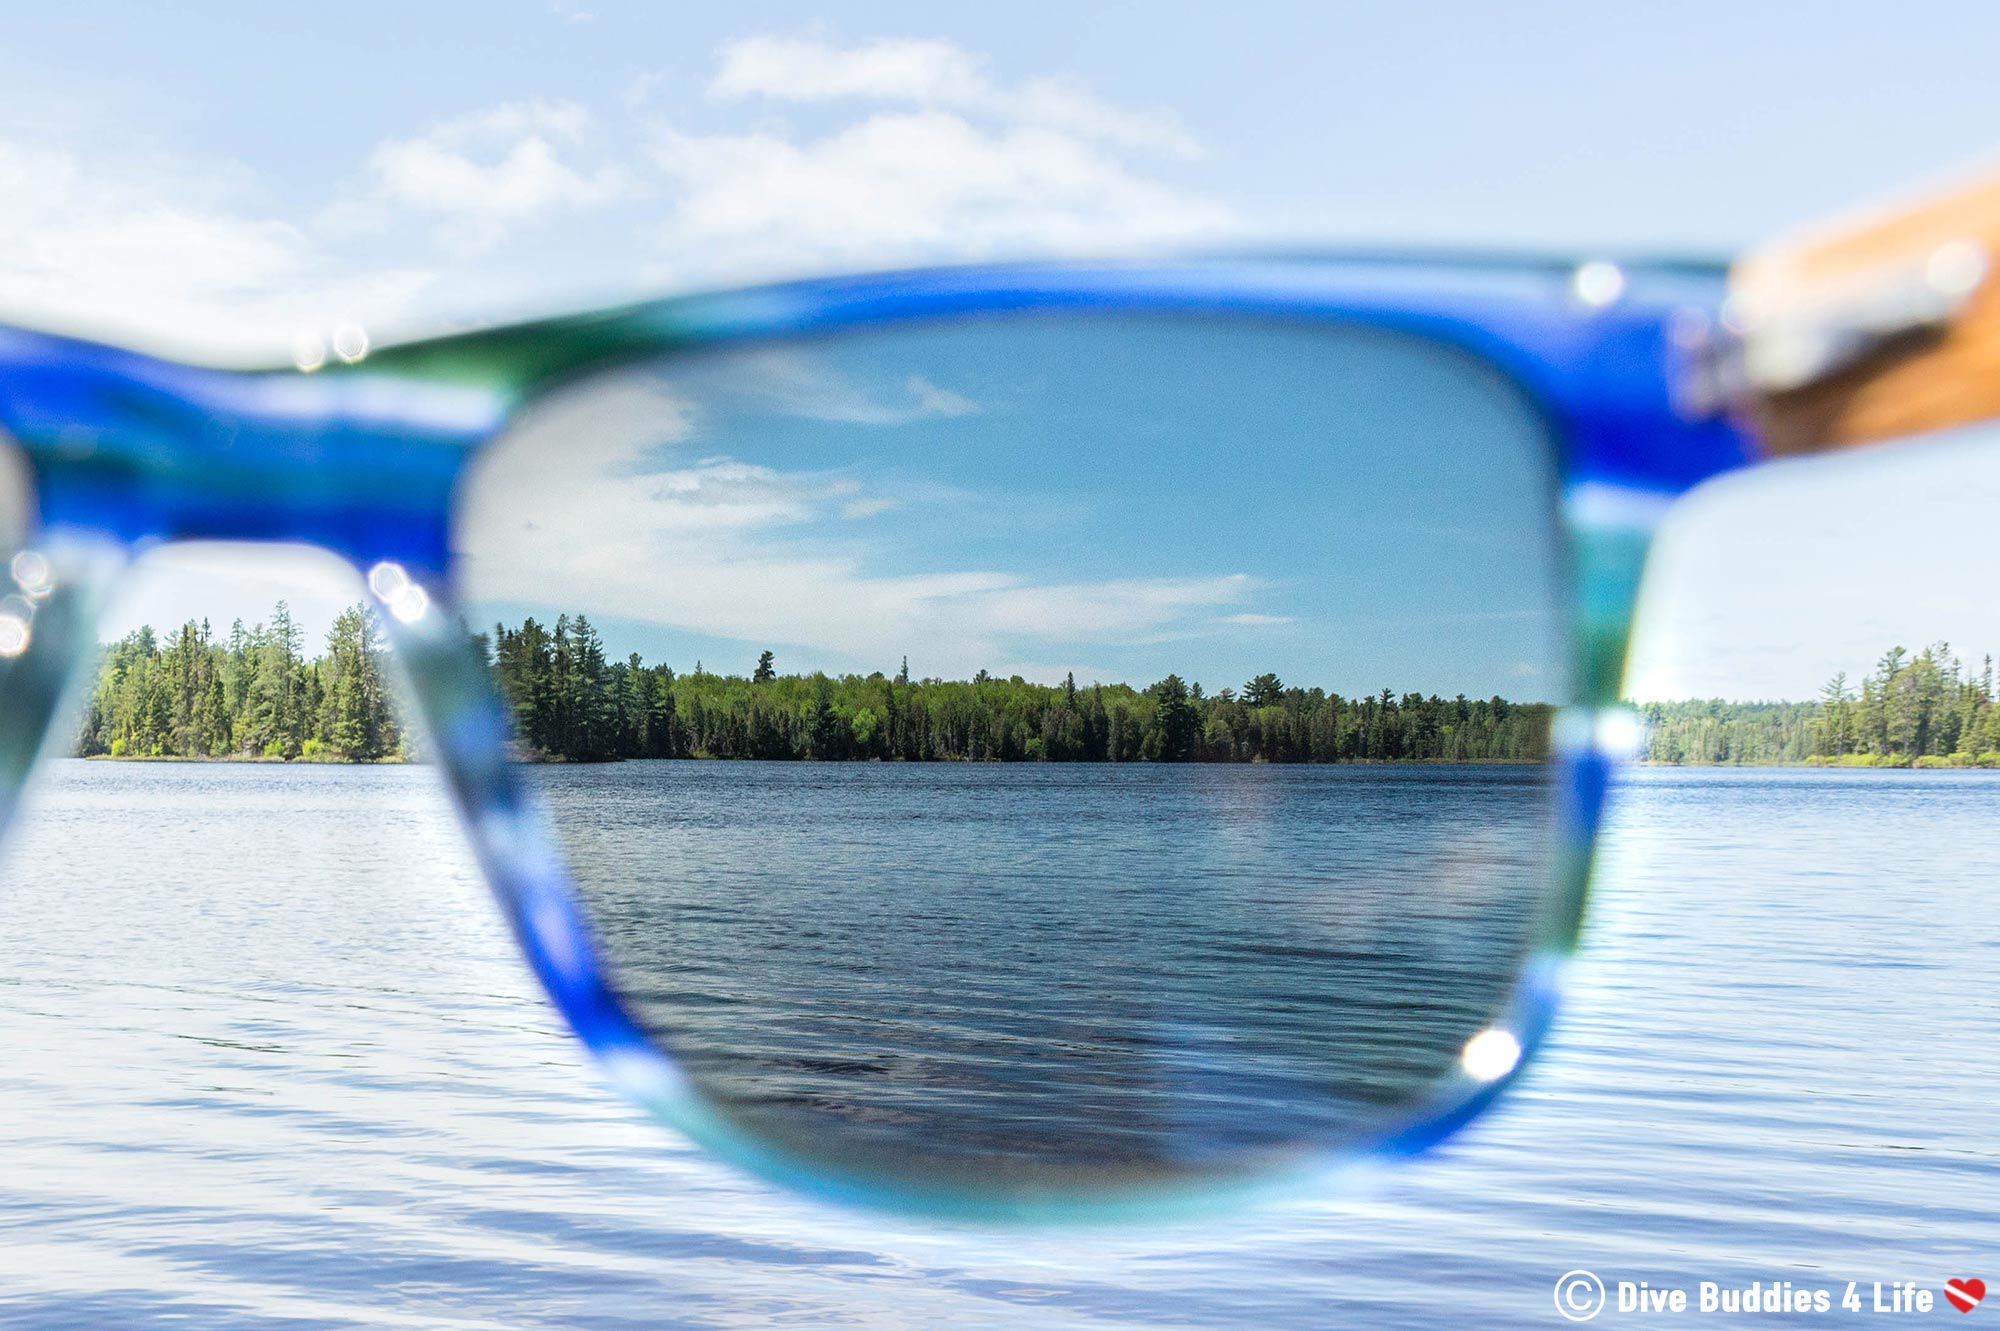 Looking Through The Polarized Lens Of A Wildwood Sunglass In Northern Ontario